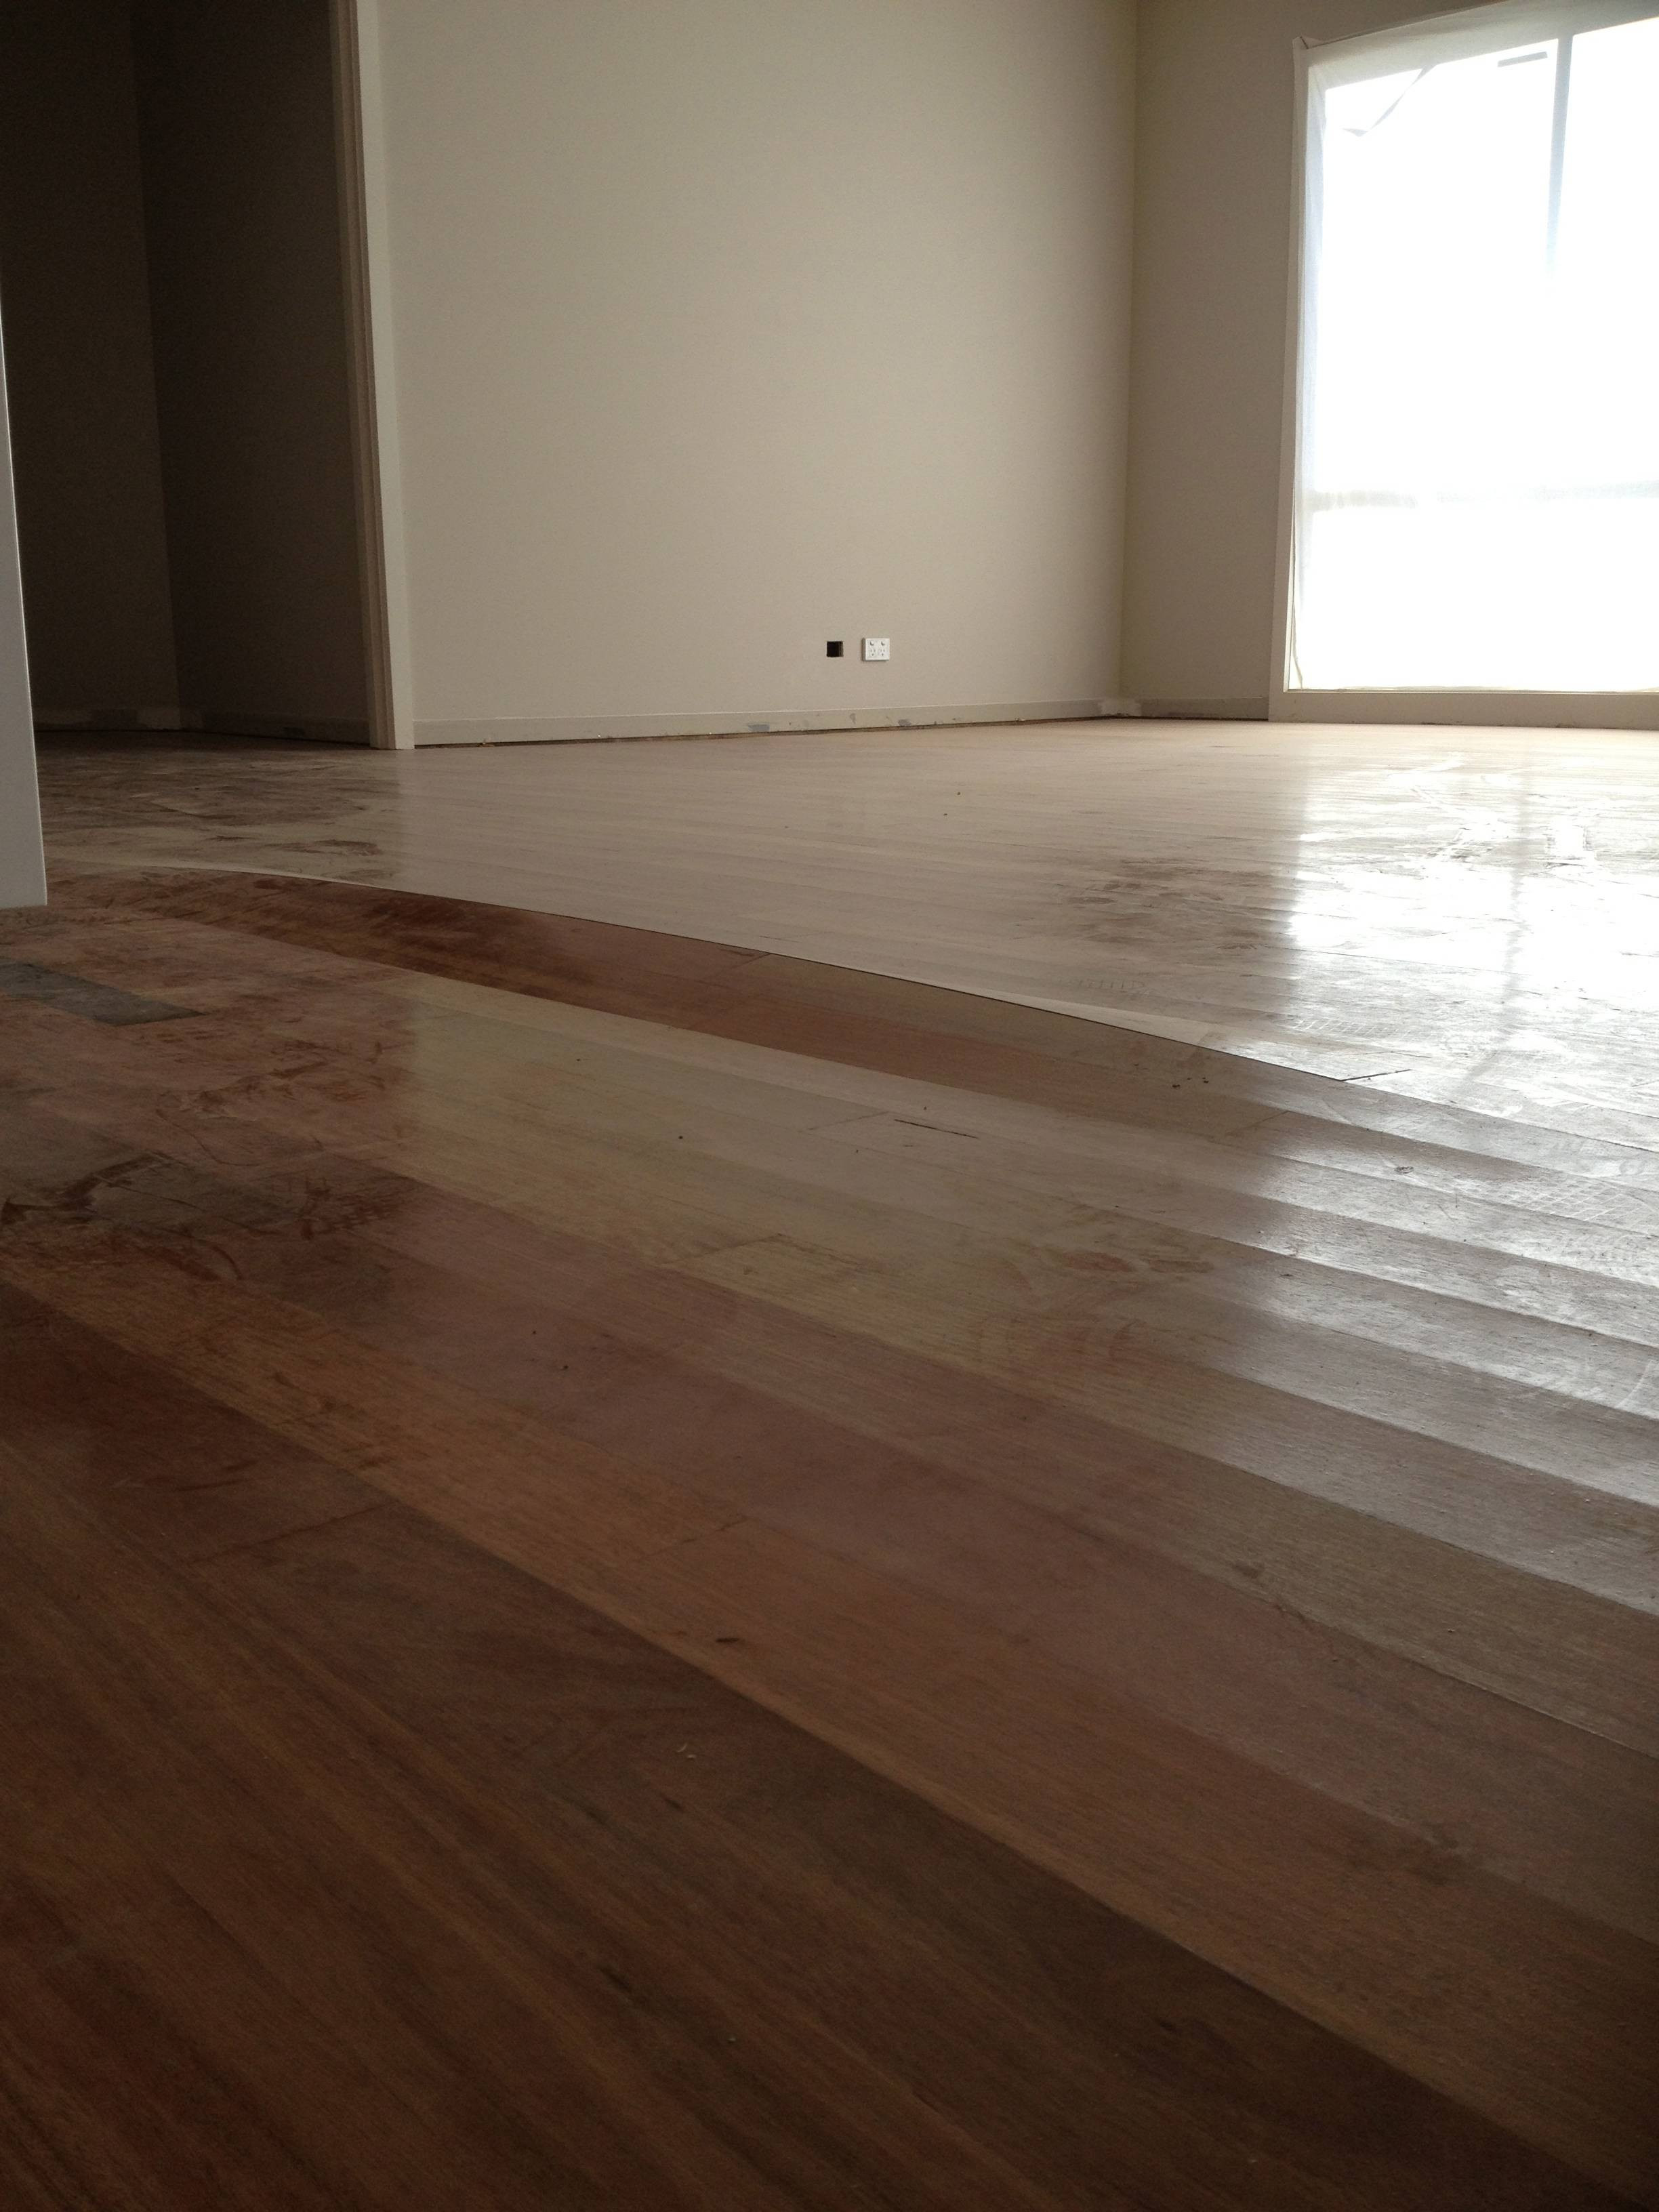 hardwood floors and water of how to fix laminate flooring that is buckling floor inside how to fix laminate flooring that is buckling how to rid of moisture in hardwood flooring